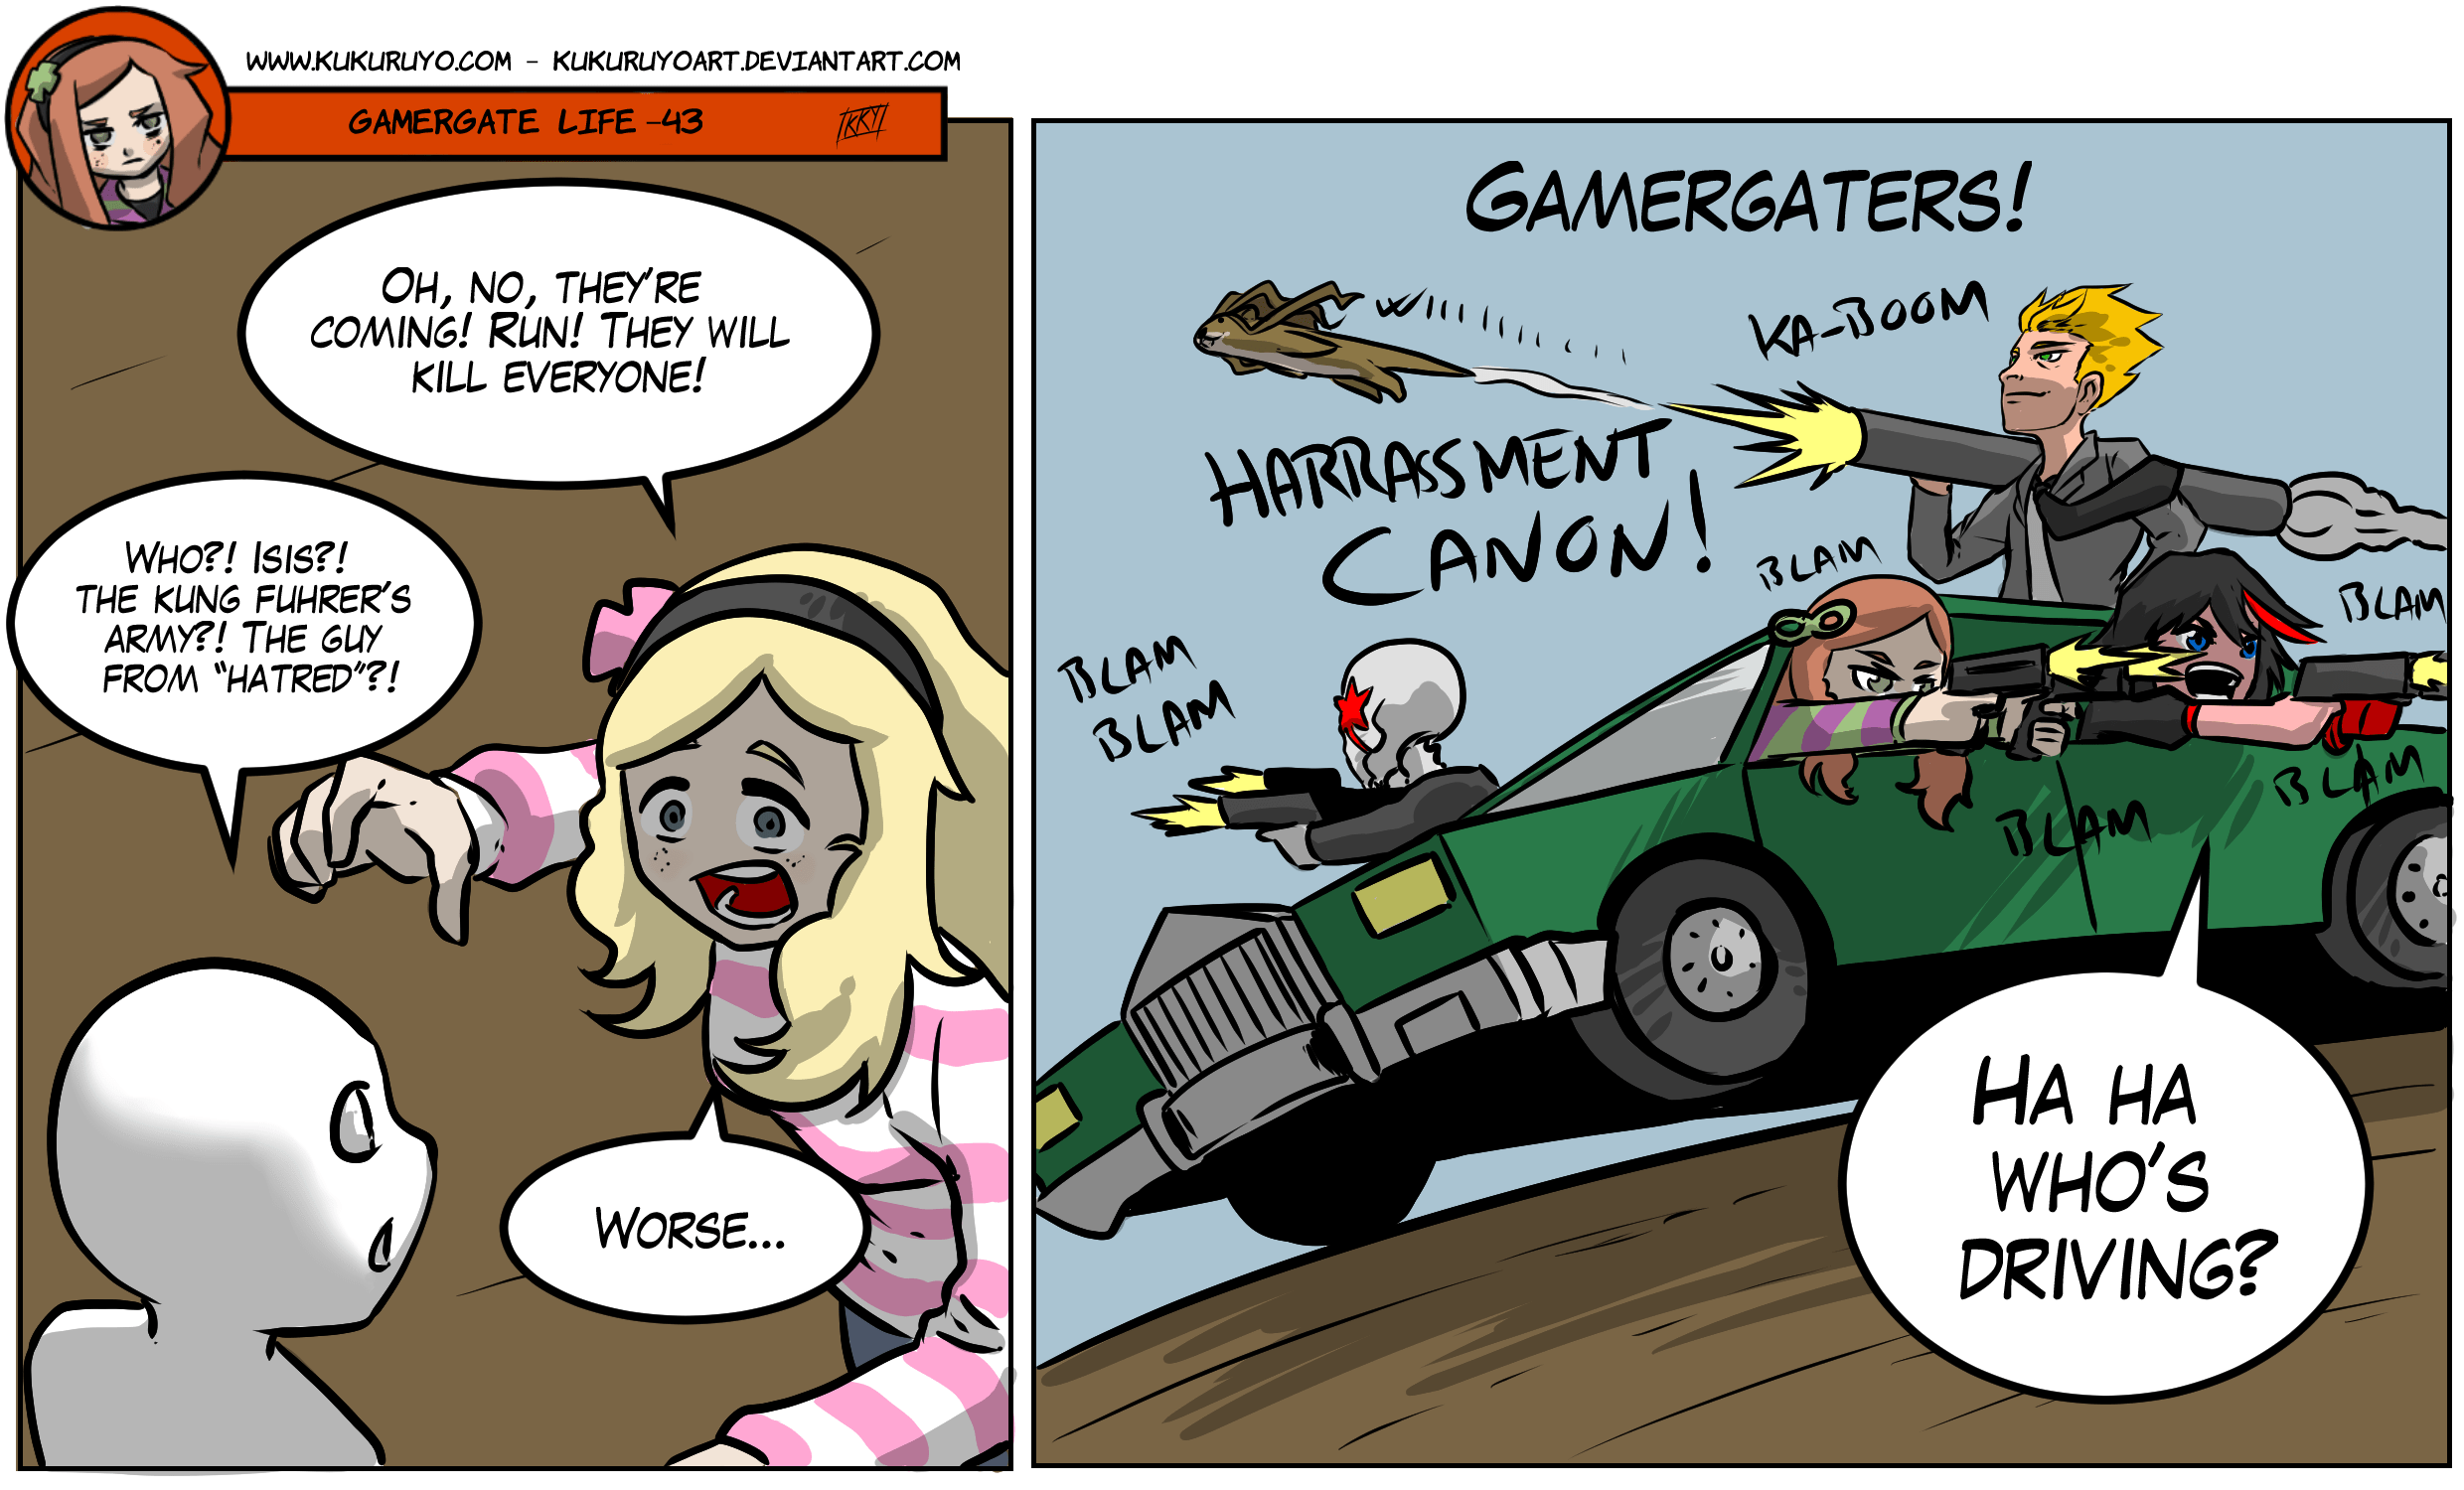 Gamergate life 43 (english)